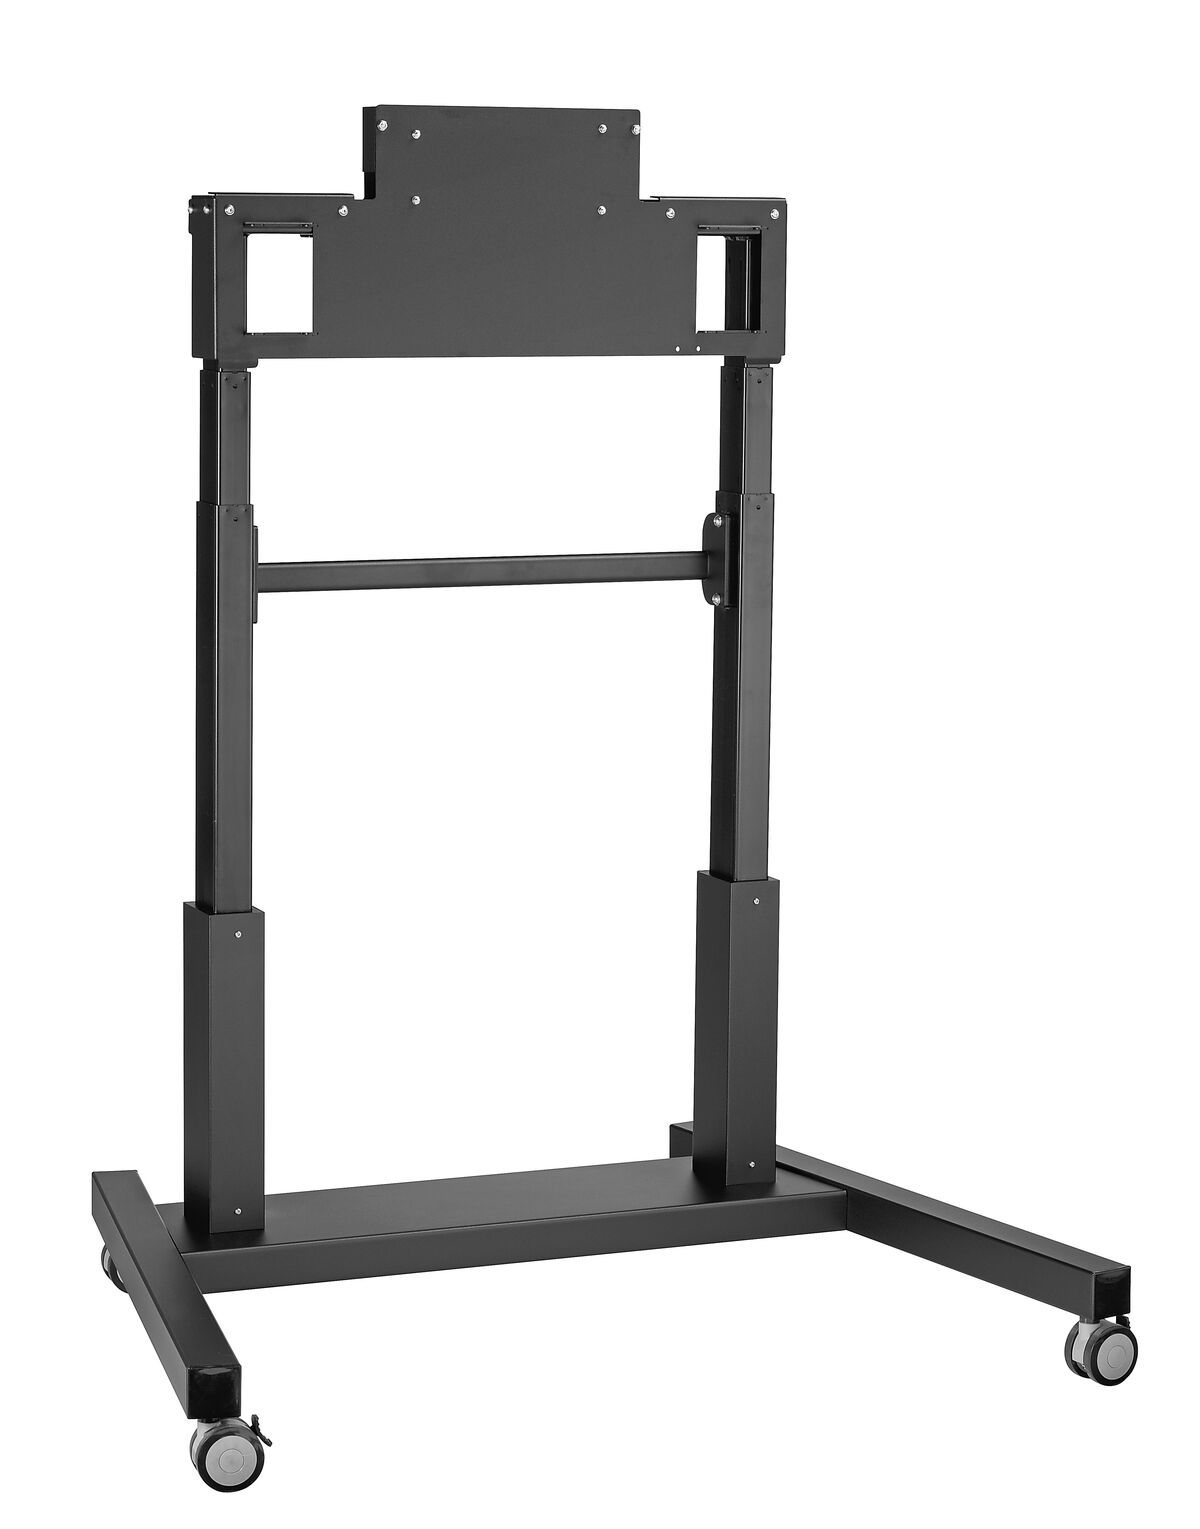 Vogel's PFTE 7112 Trolley motorizzato - Product